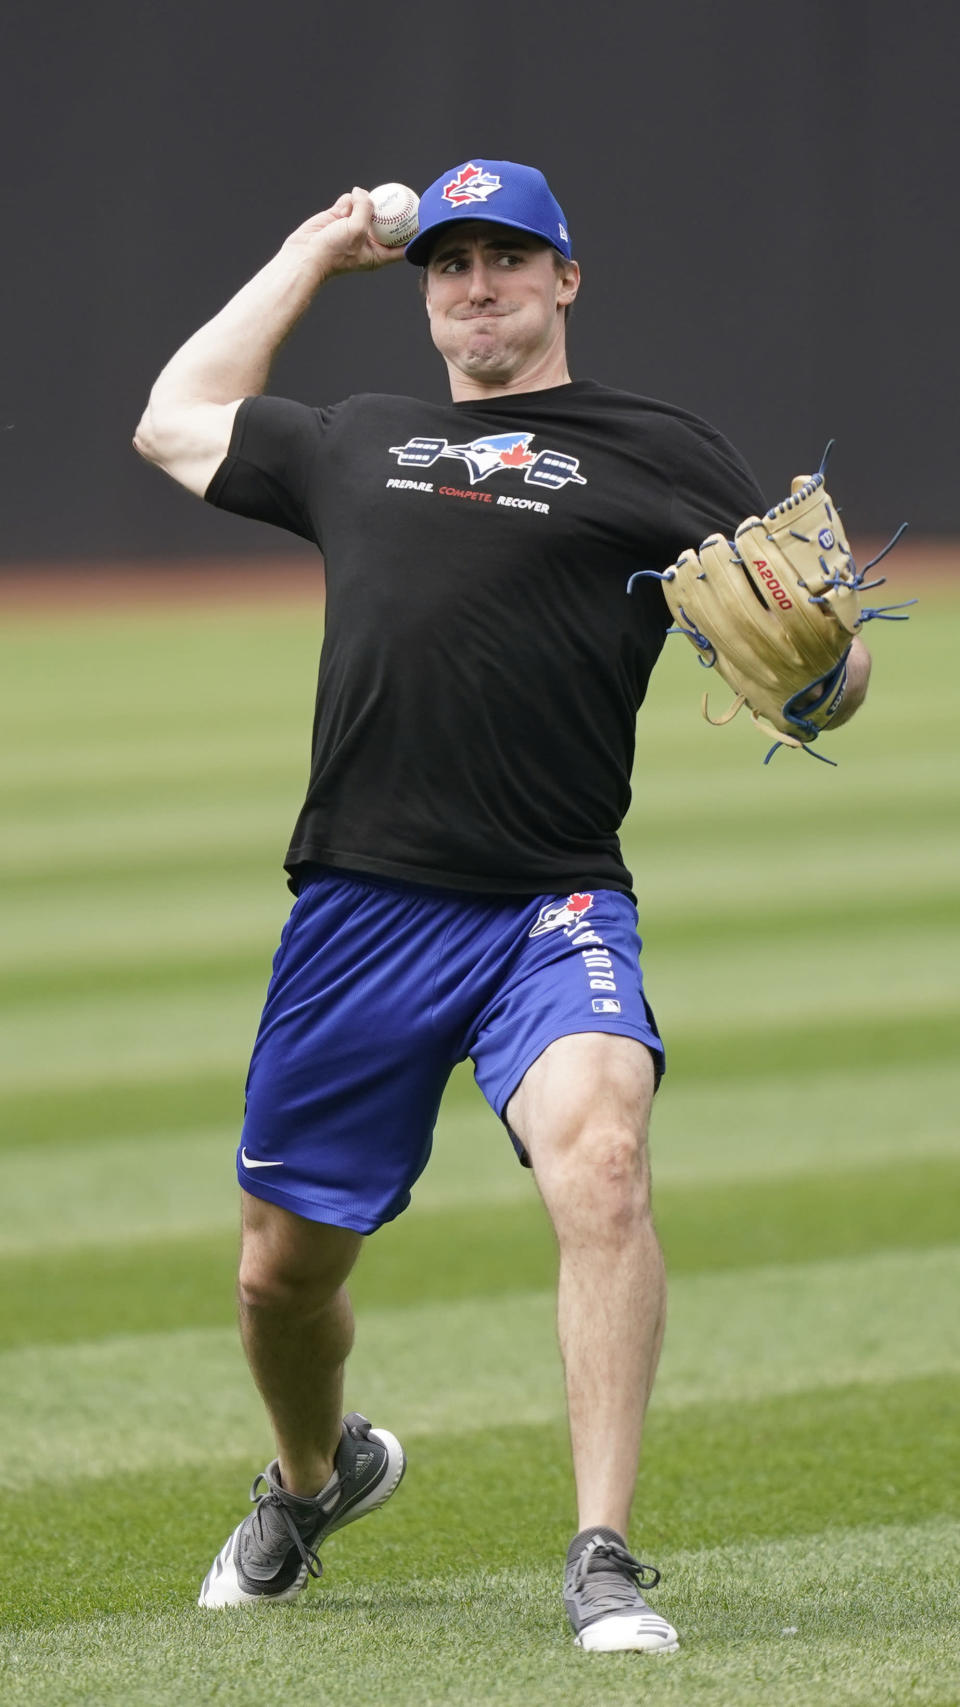 Toronto Blue Jays starting pitcher Ross Stripling warms up Saturday, May 29, 2021, in Cleveland. The baseball game between the Blue Jays and the Cleveland Indians was postponed due to inclement weather. The game will be rescheduled as a traditional doubleheader Sunday. (AP Photo/Tony Dejak)